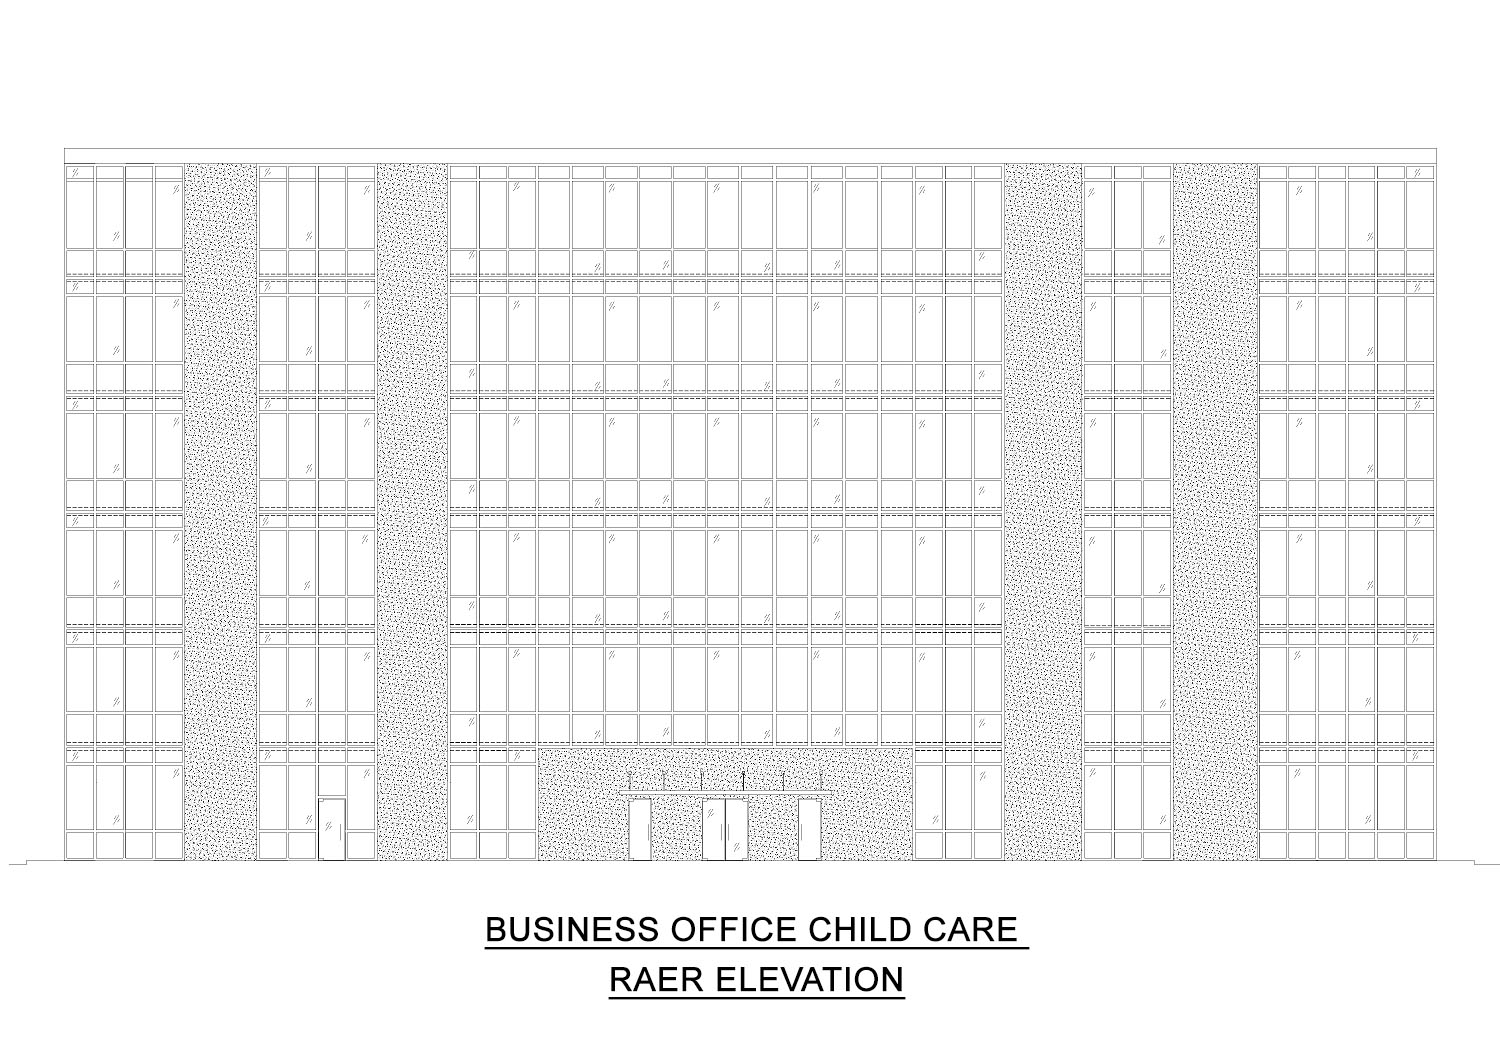 Business Office Child Care plans for sale